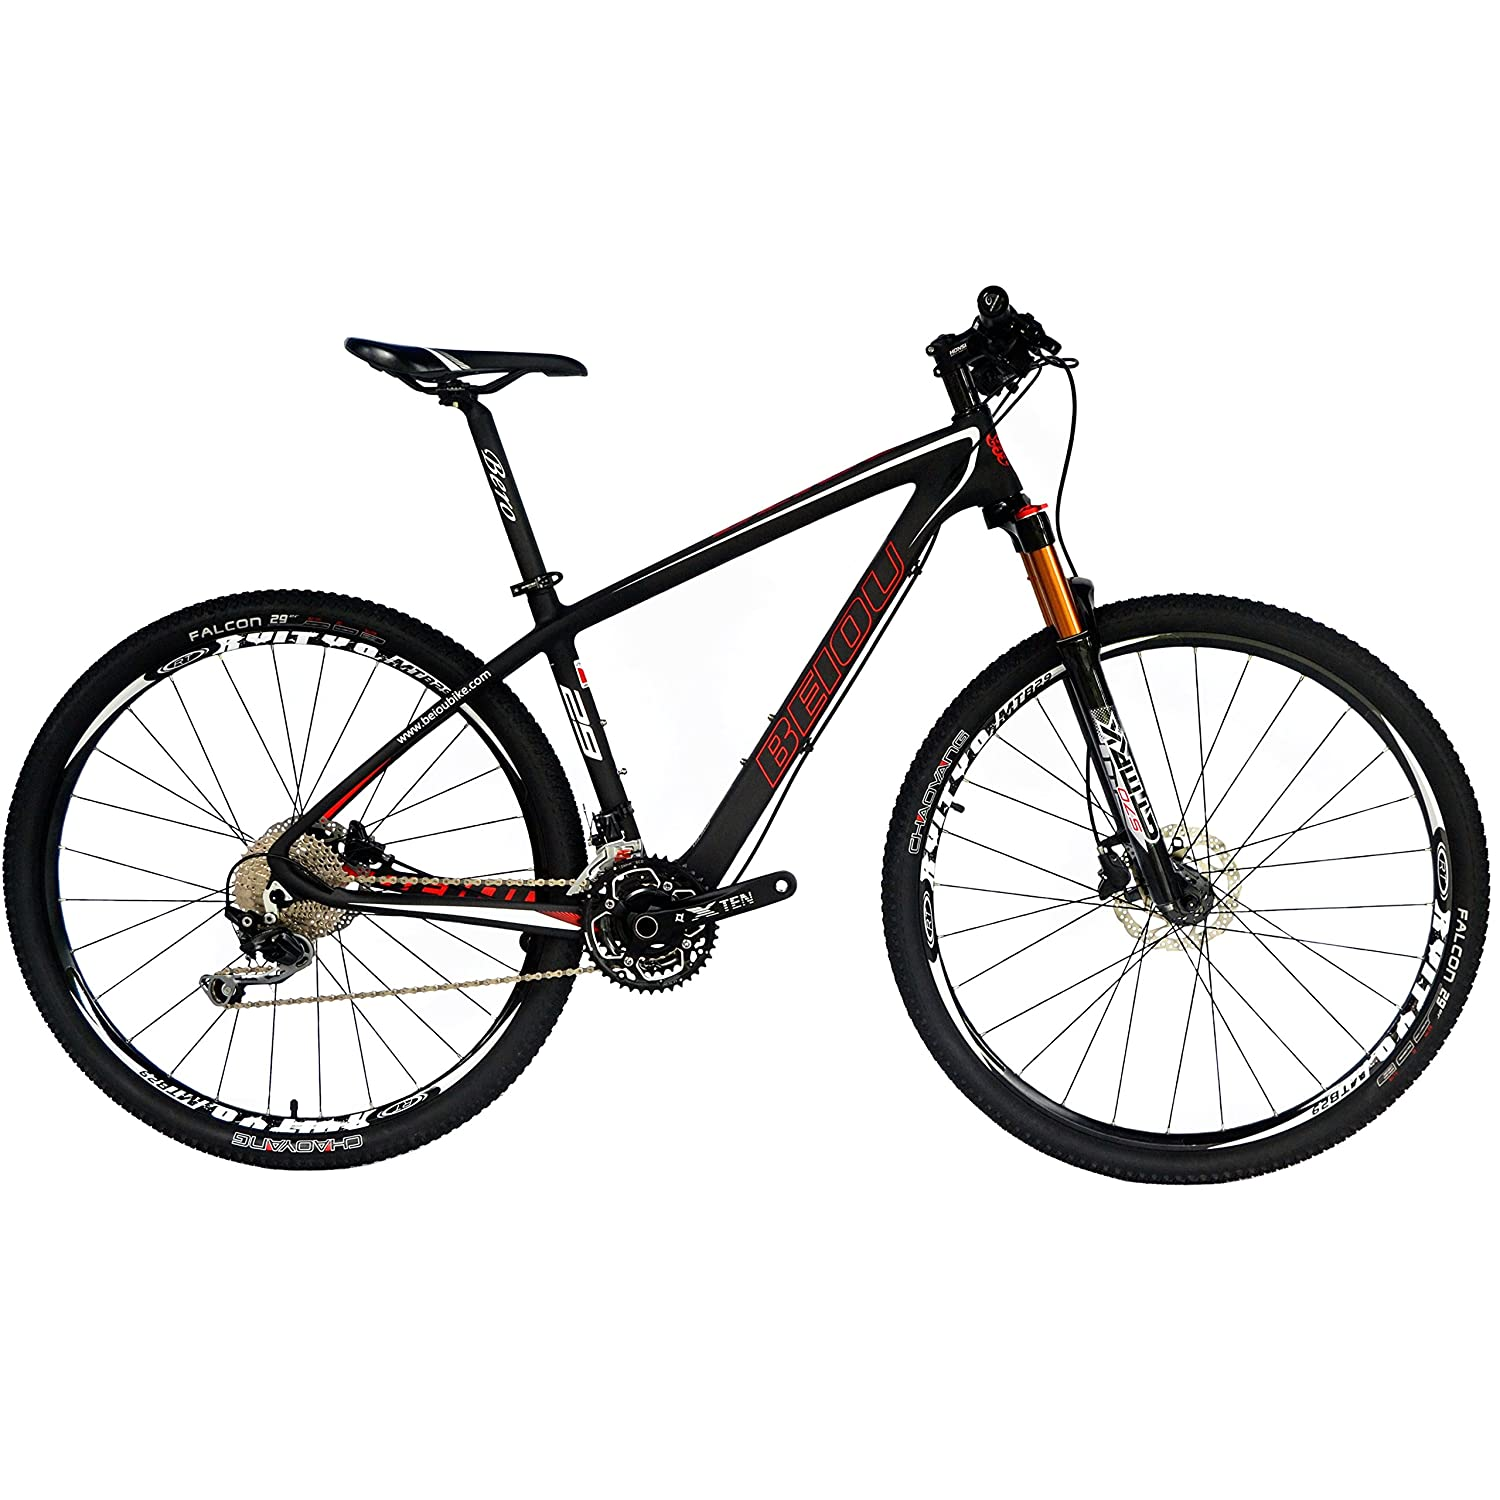 Carbon Fiber Bikes >> Beiou Carbon Fiber 27 5 Mountain Bike 10 7kg 29 Hardtail Bicycle 2 10 Tires Shimano Deore M6000 30 Speed Xc Trail Mtb 650b 29er T800 Ultralight